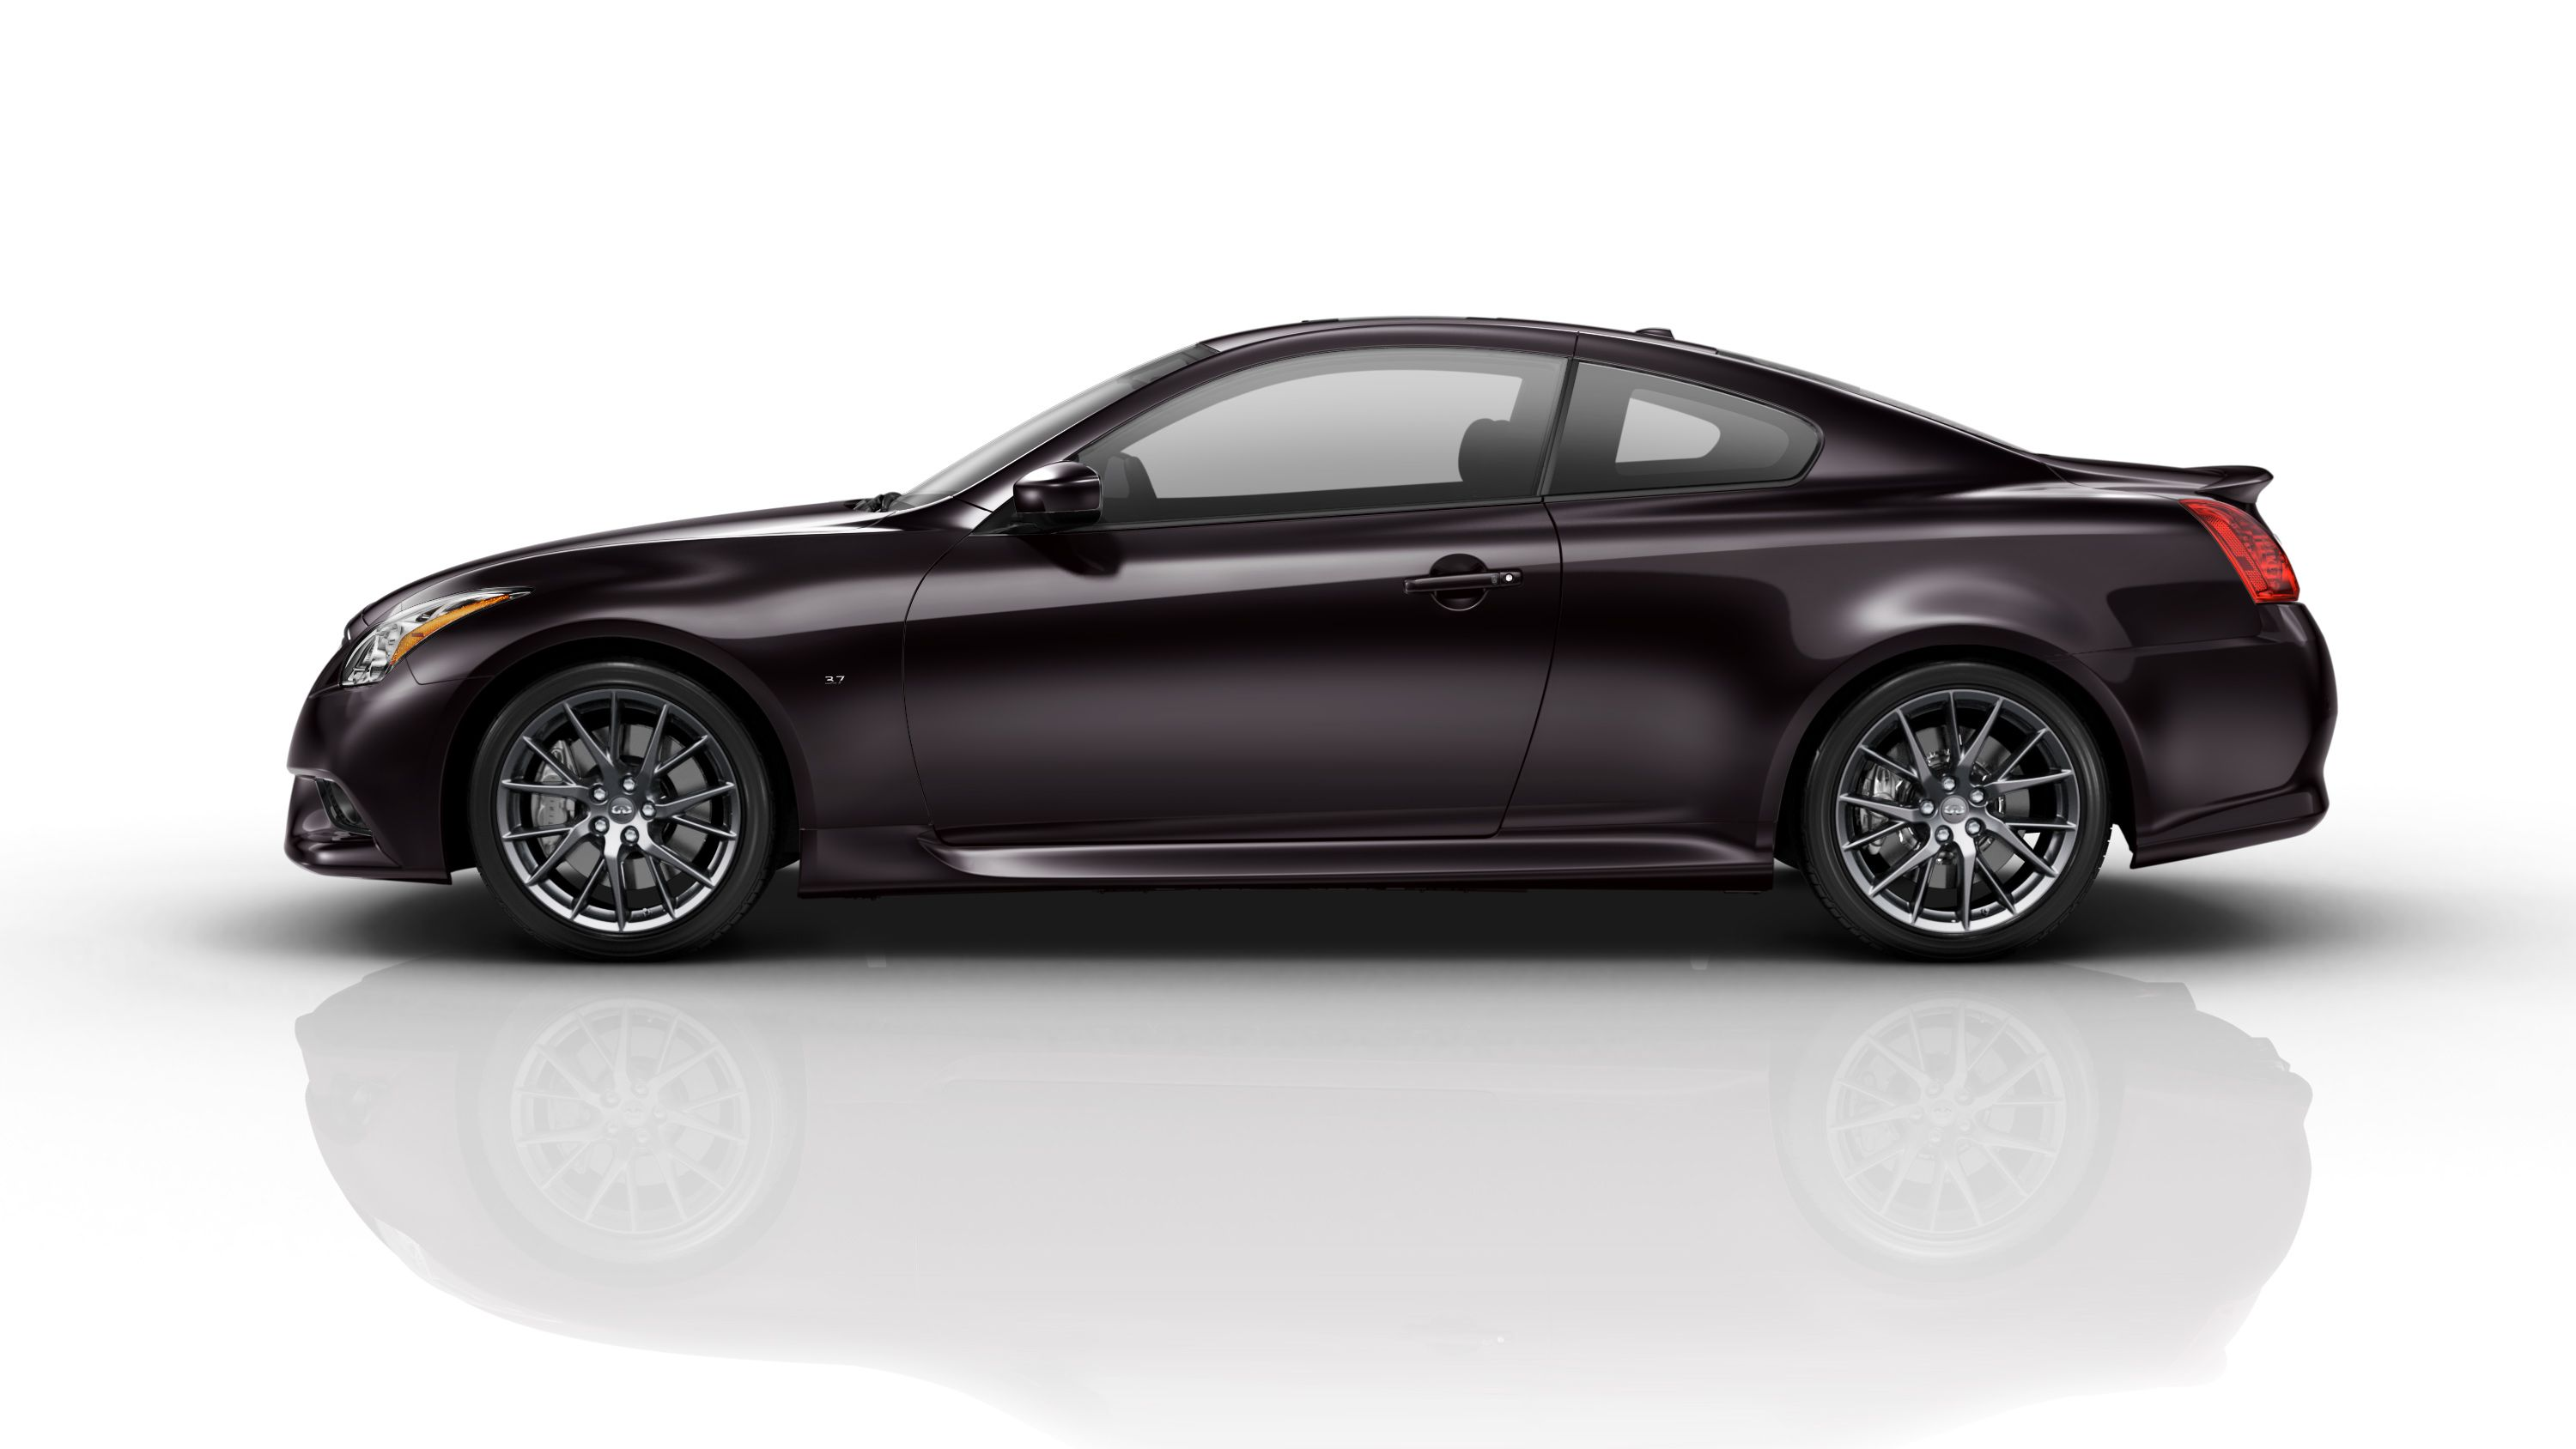 View Photos and Videos of the 2014 Infiniti Q60 IPL Coupe